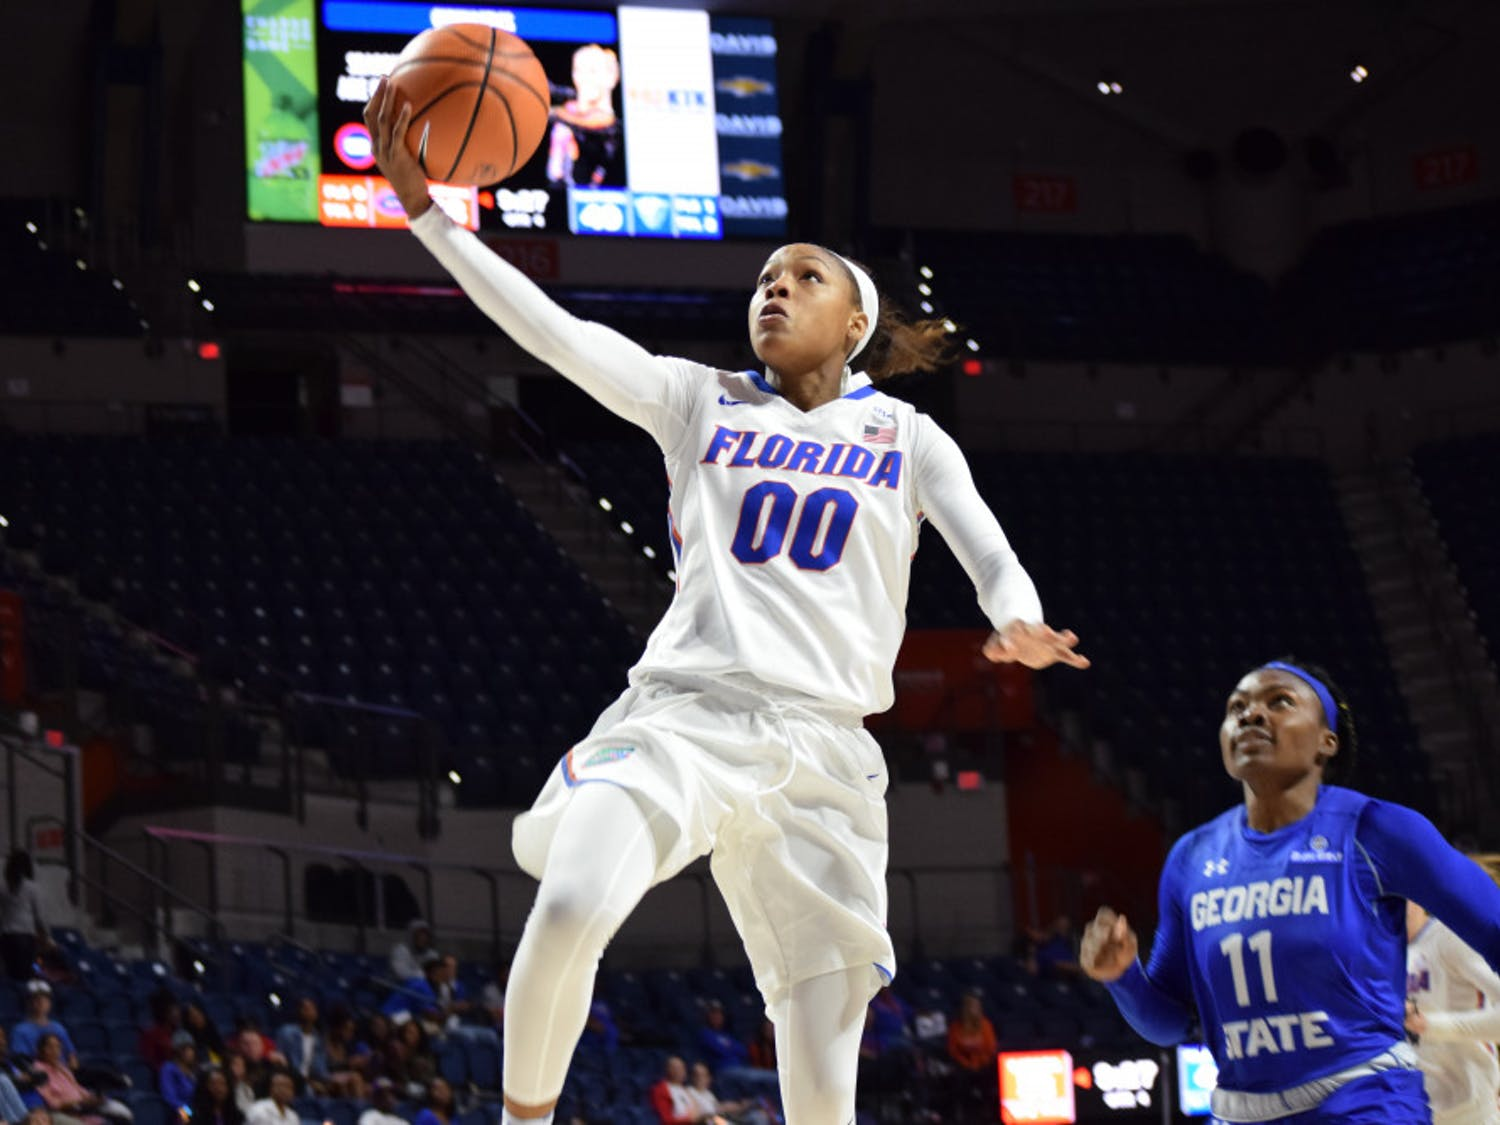 UF guard Delicia Washington collected 10 rebounds and three assists during Florida's 72-67 win over Texas Tech on Sunday at the O'Connell Center.